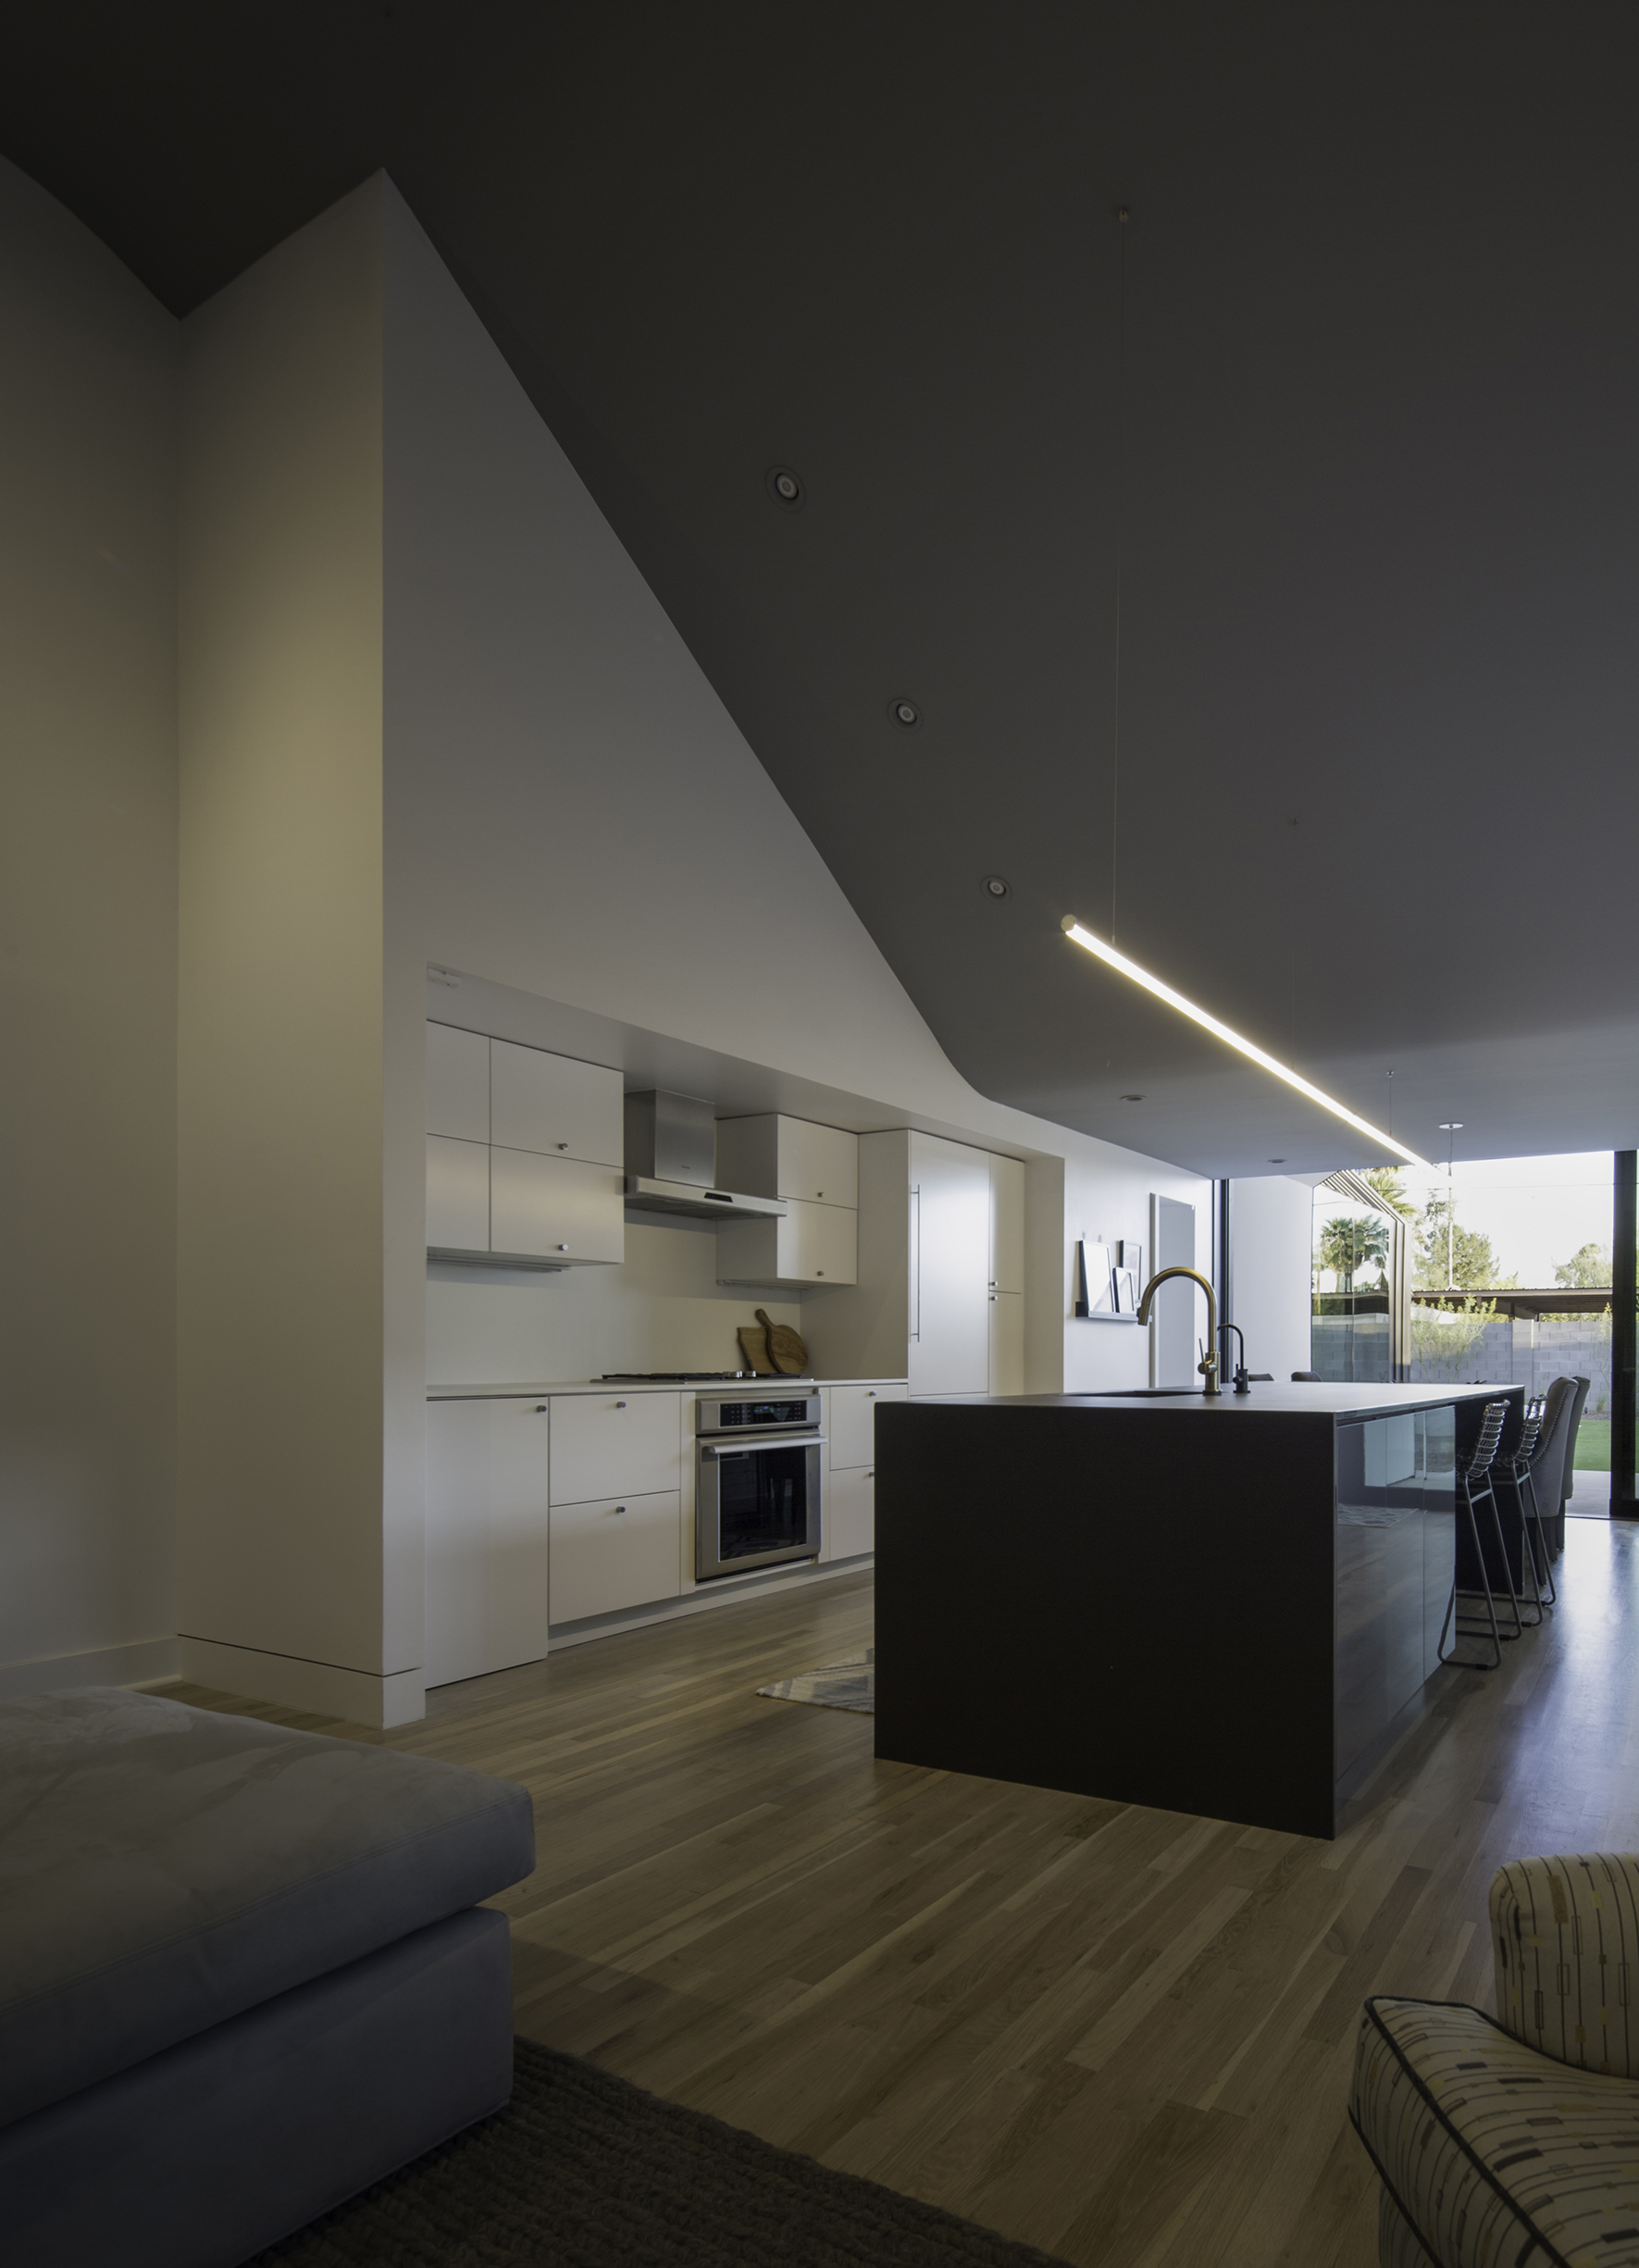 04 Chen + Suchart Studio LLC - Escobar Renovation Image